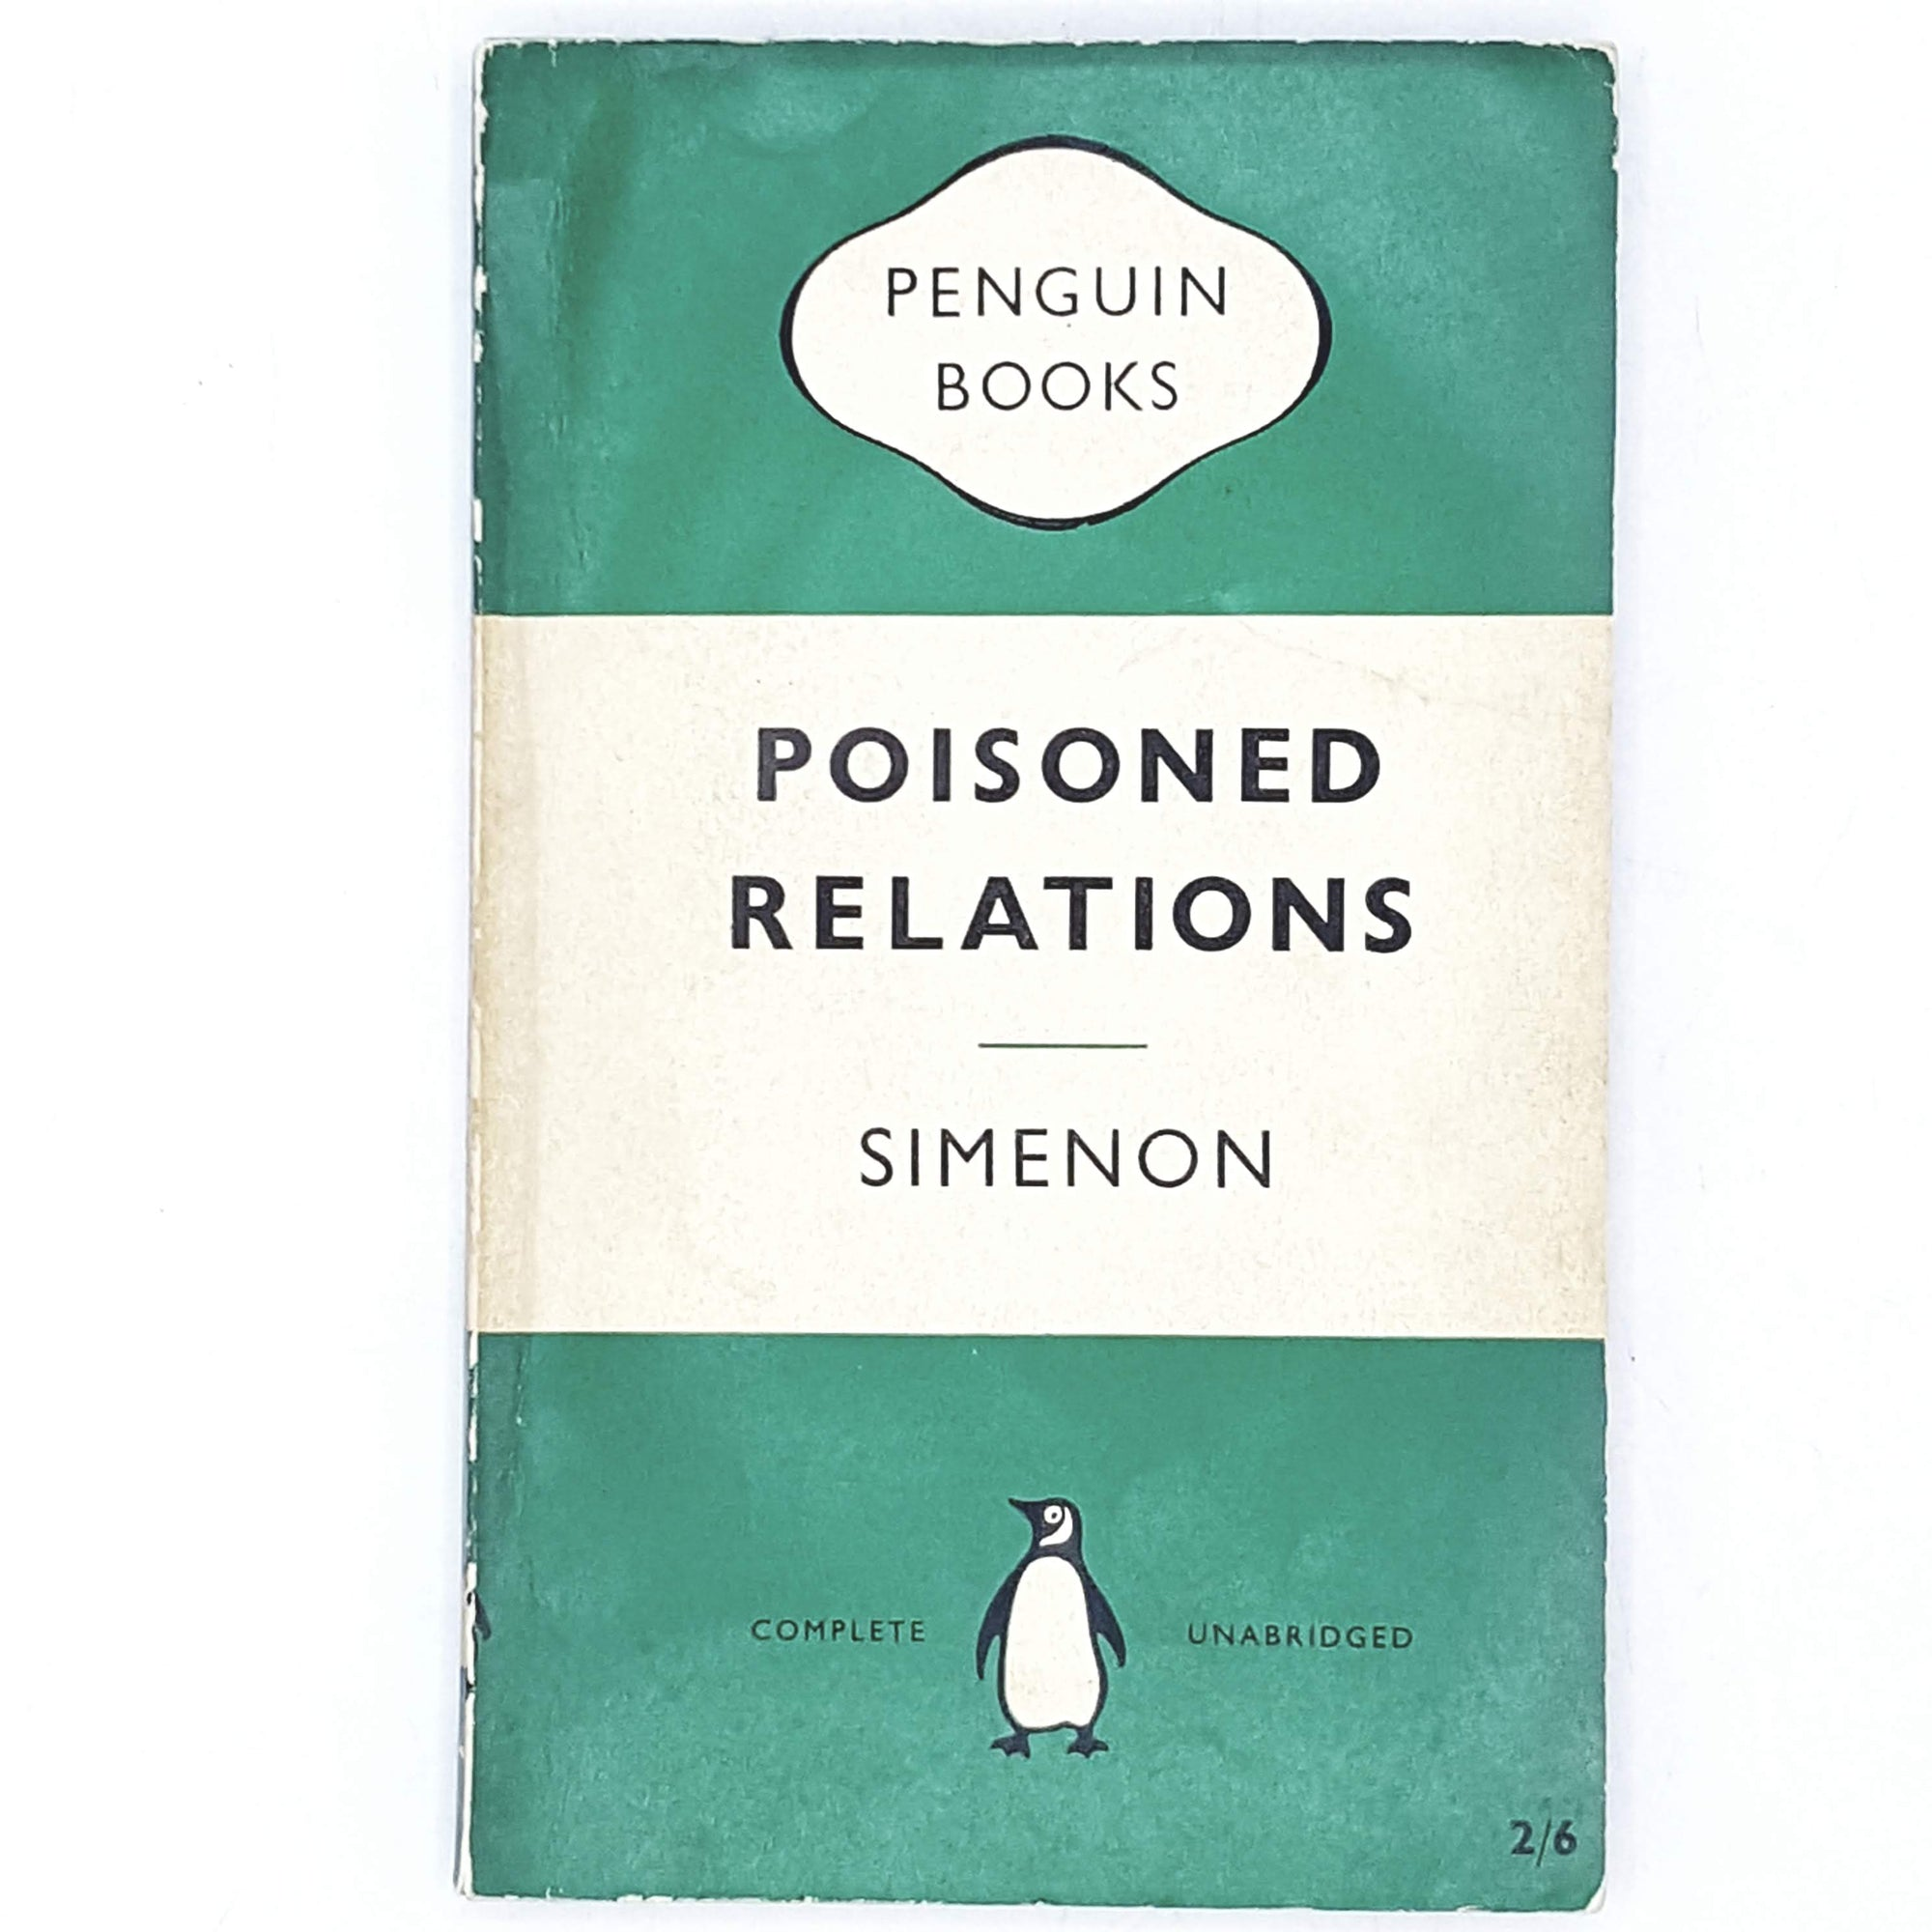 First Edition Simenon's Poisoned Relations 1958